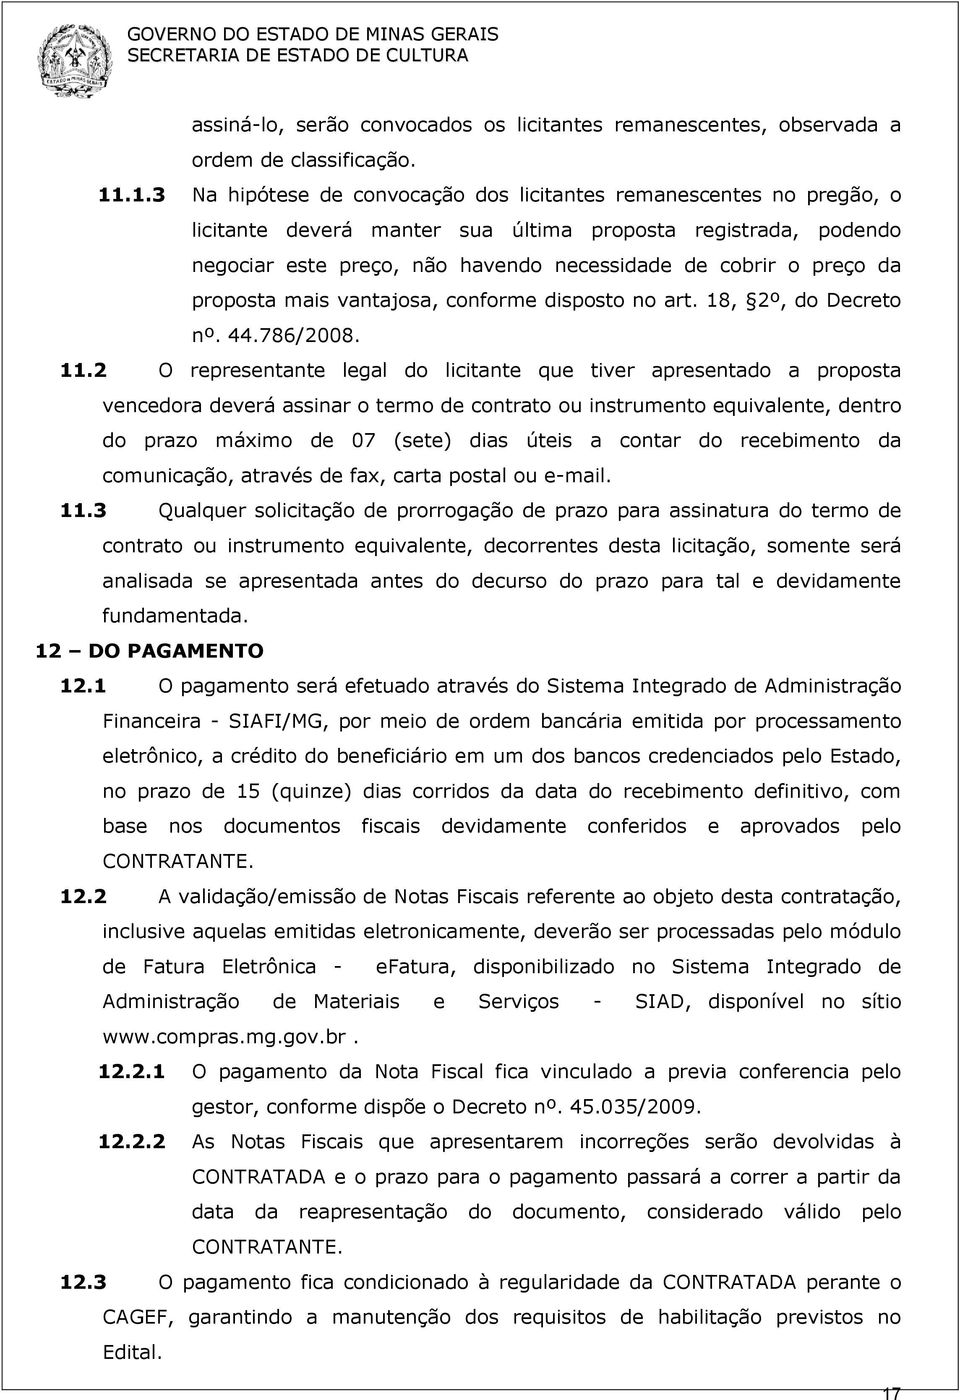 da proposta mais vantajosa, conforme disposto no art. 18, 2º, do Decreto nº. 44.786/2008. 11.